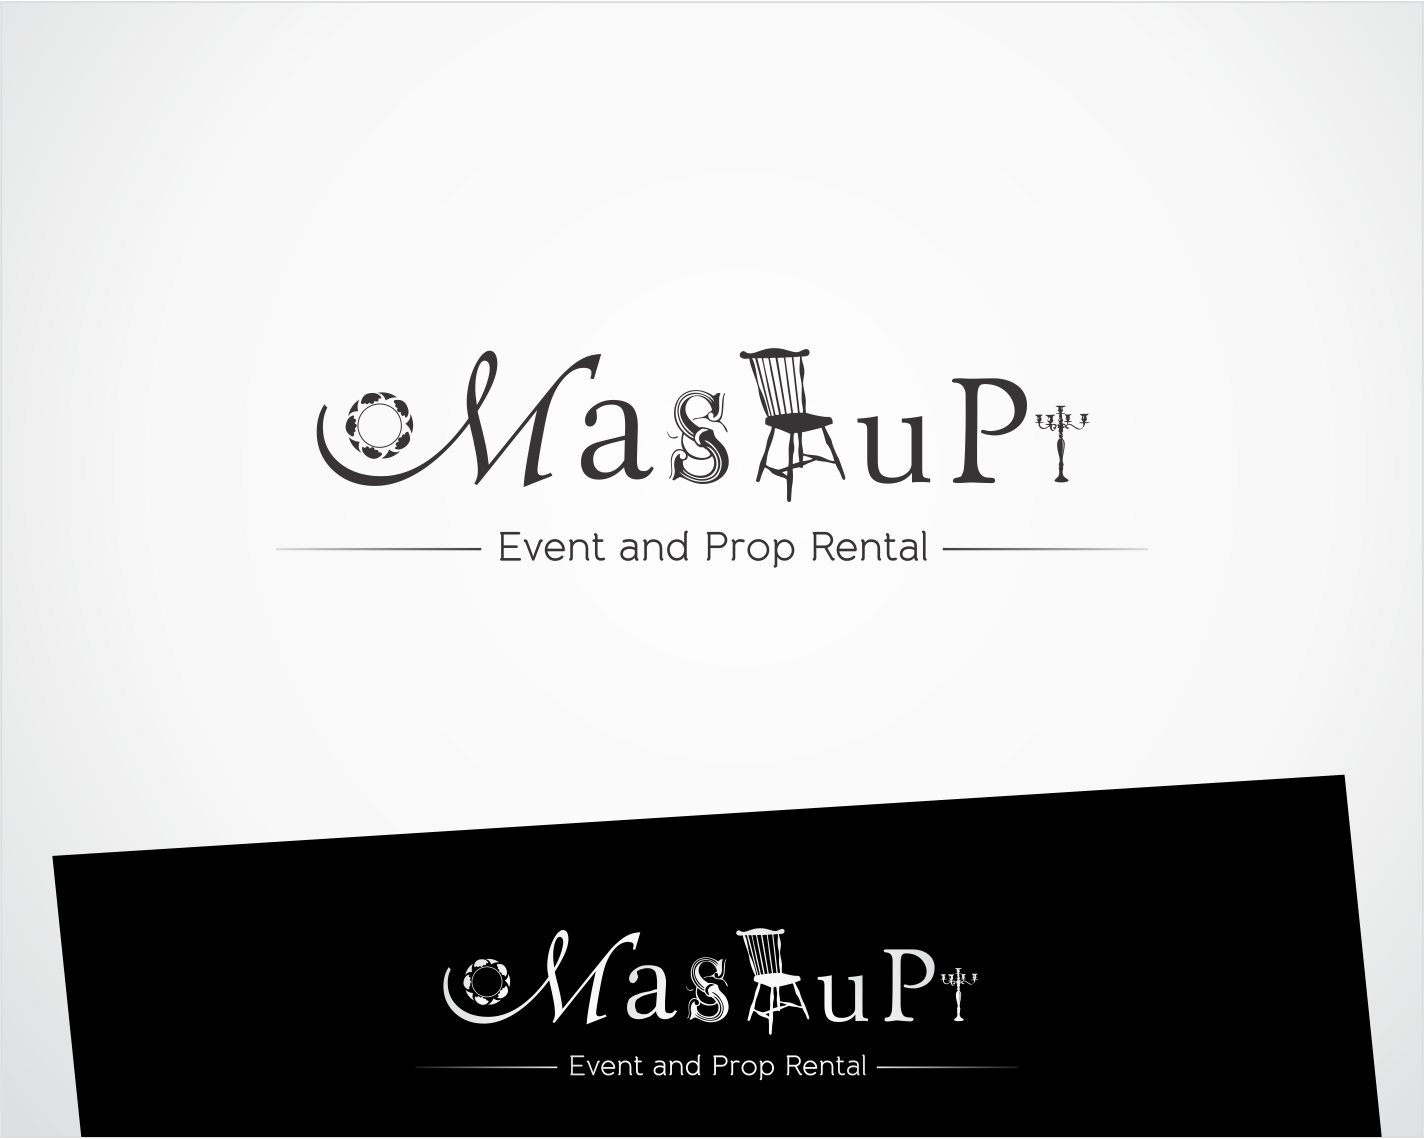 Mashup Event and Prop Rental needs a cool logo!